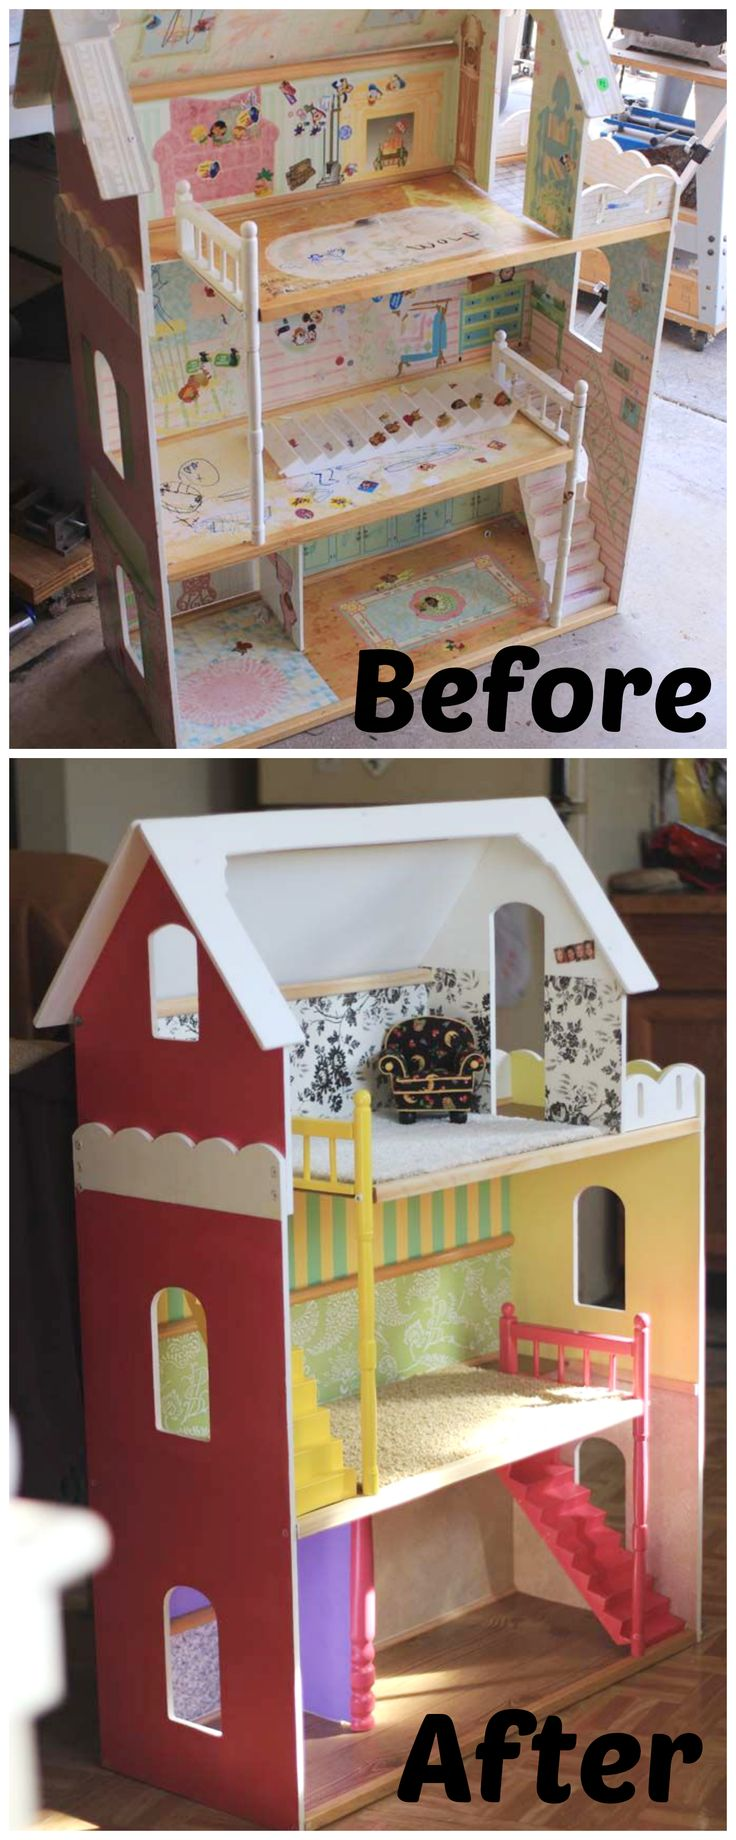 25 best ideas about doll house plans on pinterest diy doll house diy dollhouse and barbie house. Black Bedroom Furniture Sets. Home Design Ideas